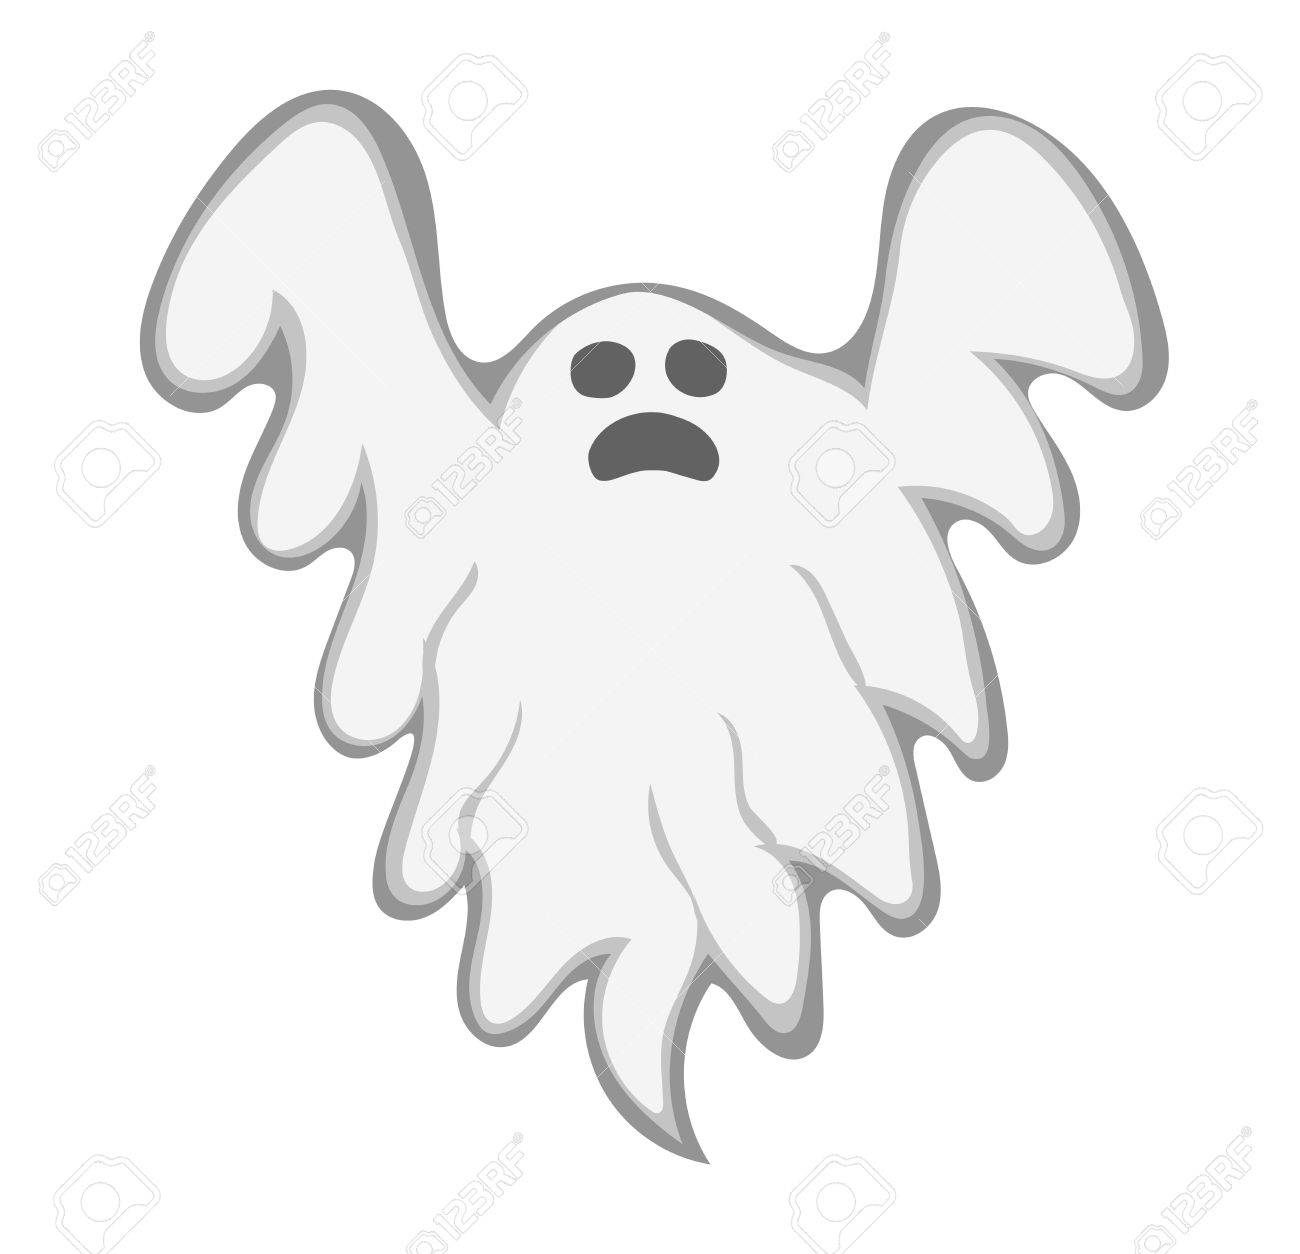 Cartoon spooky ghost character vector spooky and scary holiday cartoon spooky ghost character vector spooky and scary holiday monster design ghost character costume publicscrutiny Images